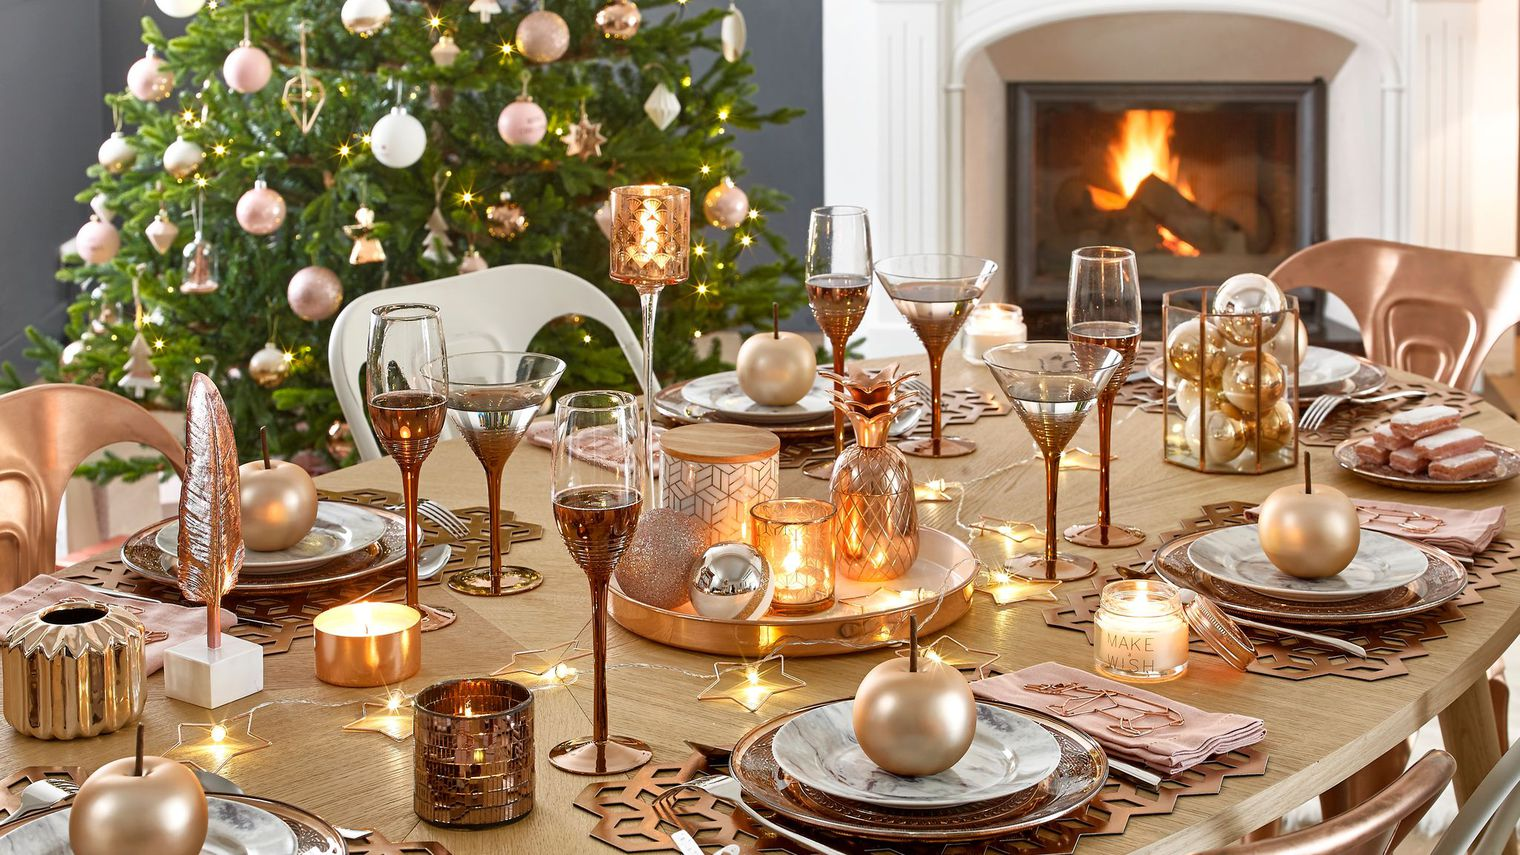 Une jolie d co pour no l justine huette cr atrice de - Deco table de noel blanc ...